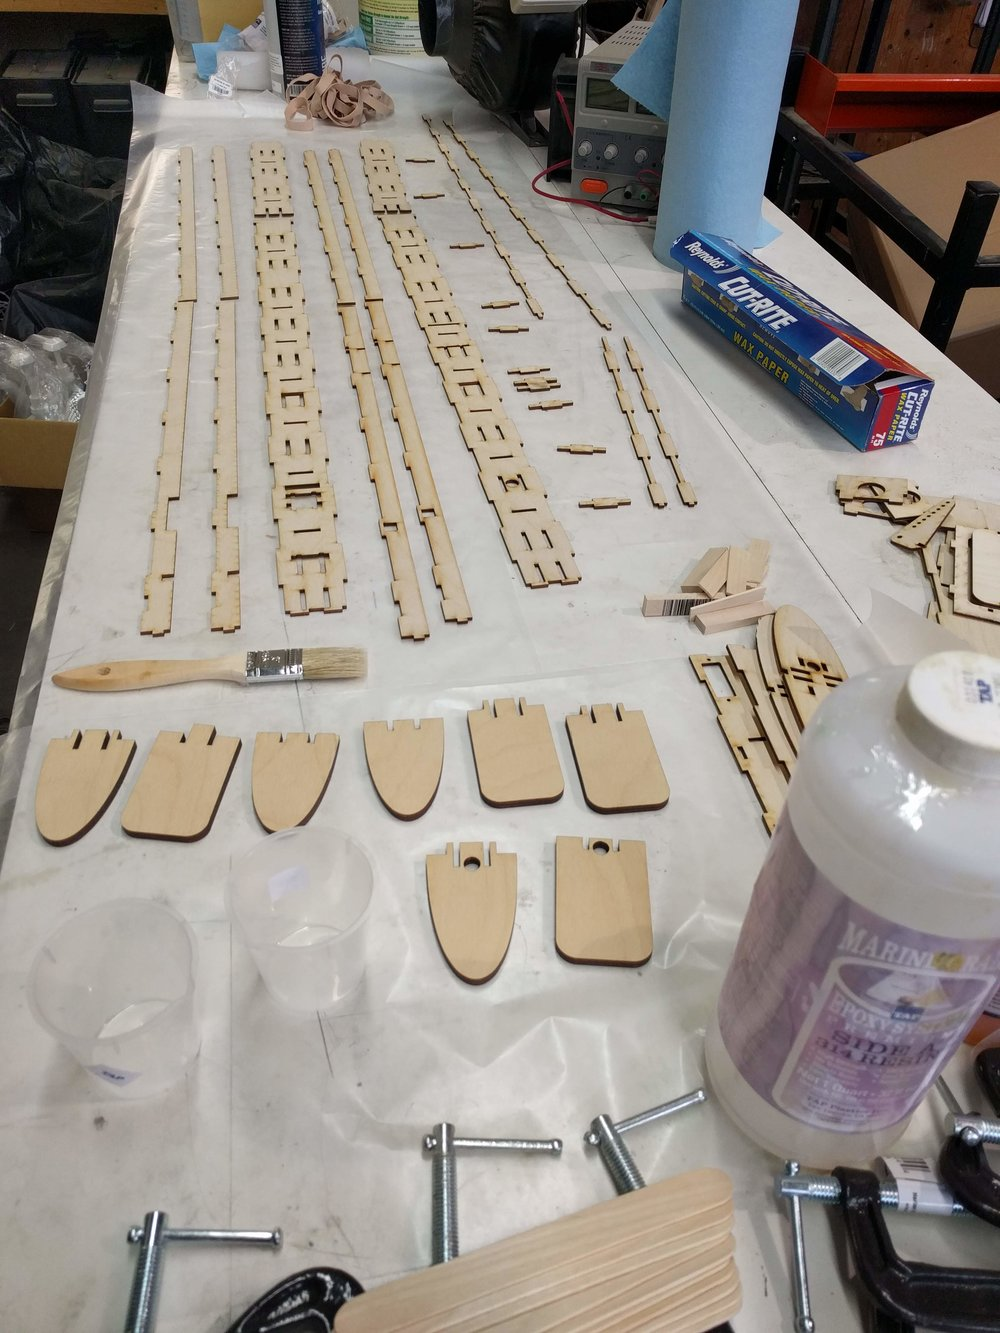 Lasercut parts for the frame laid out prior to assembly.